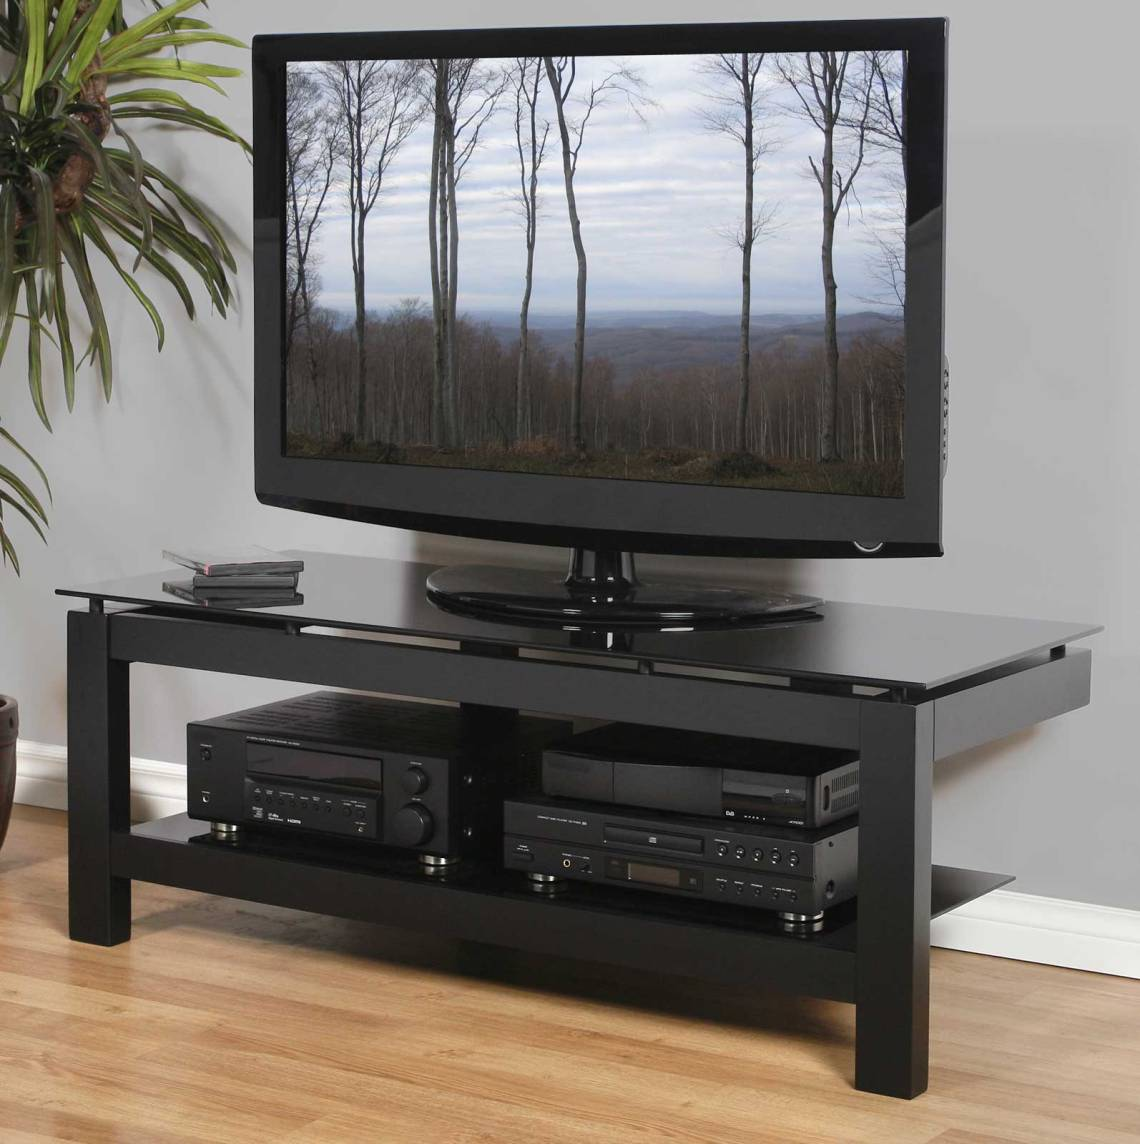 Image Result For Low Profile Tv Stands For Flat Screens